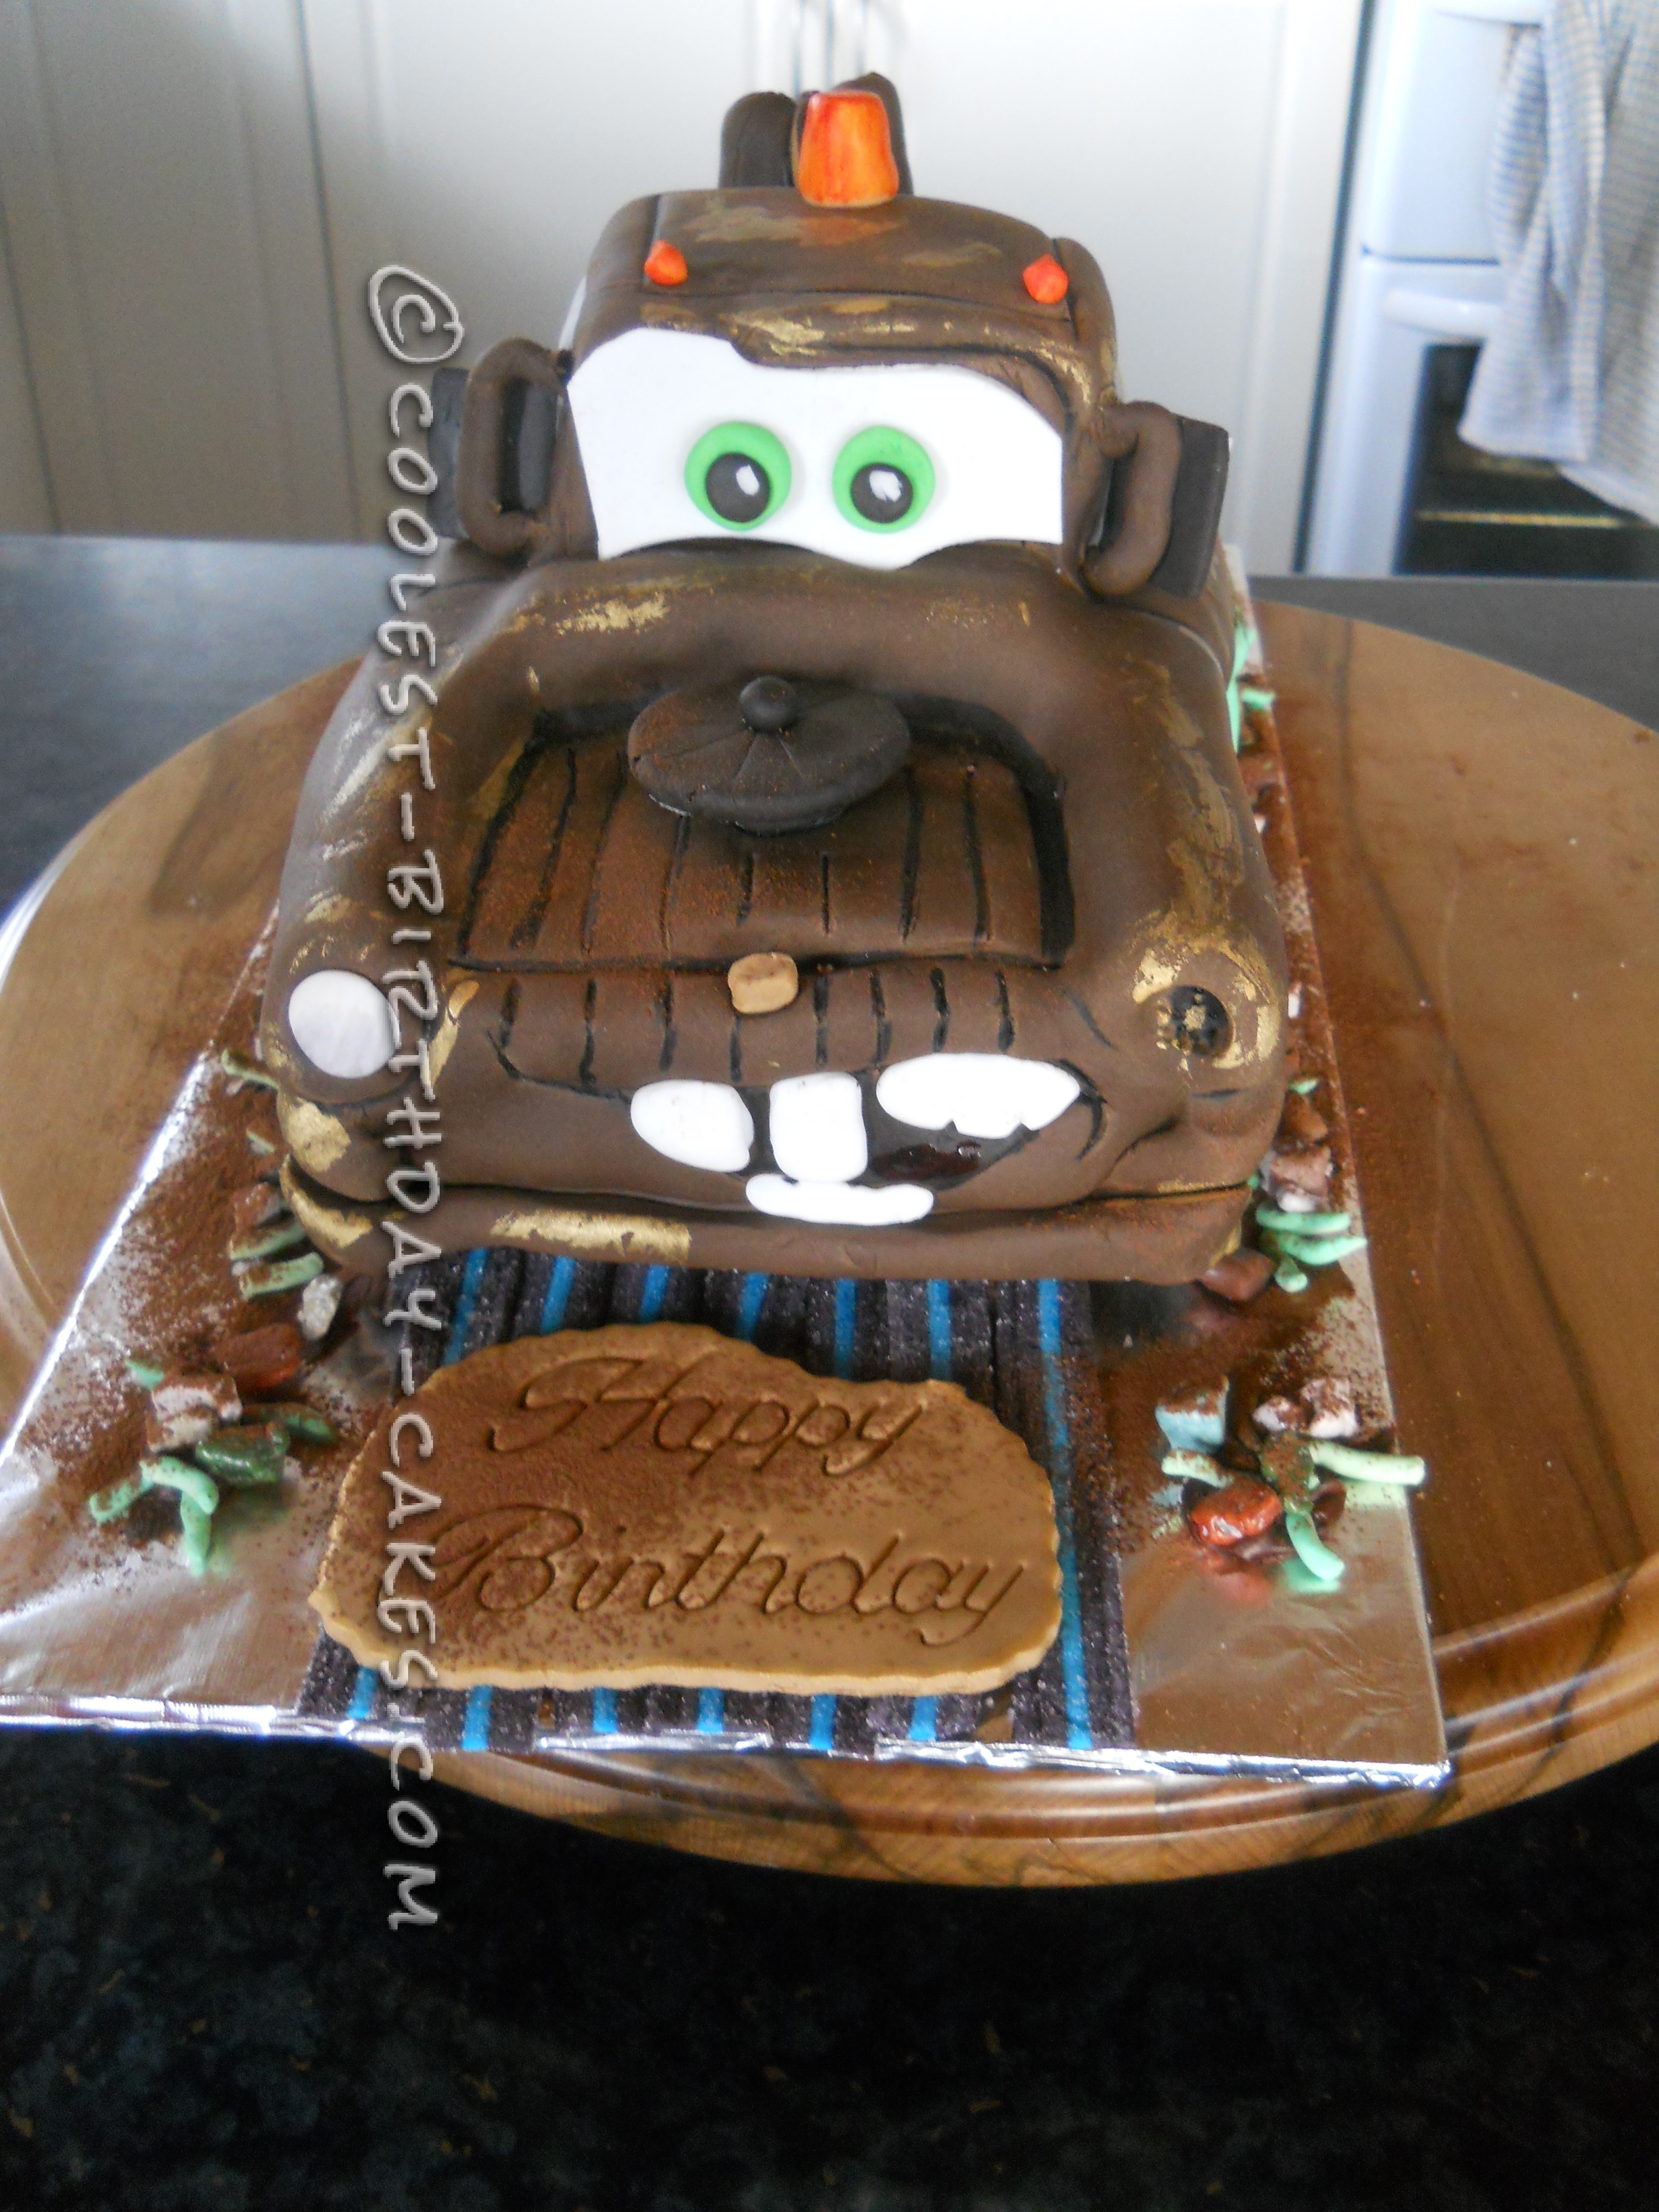 Admirable Mater The Tow Truck Cake Funny Birthday Cards Online Alyptdamsfinfo